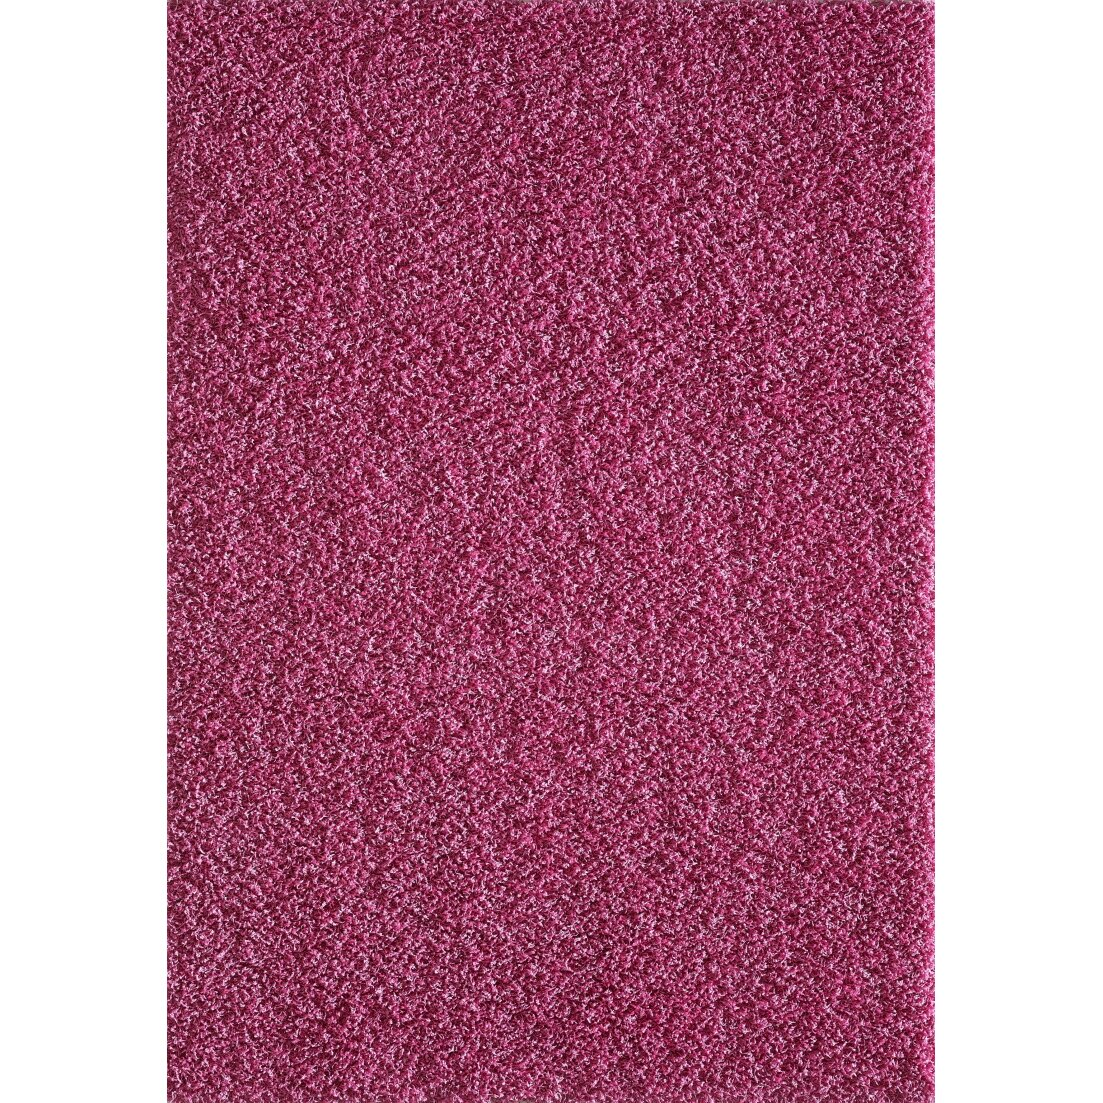 Tewh Loca Pink Area Rug Wayfair Uk